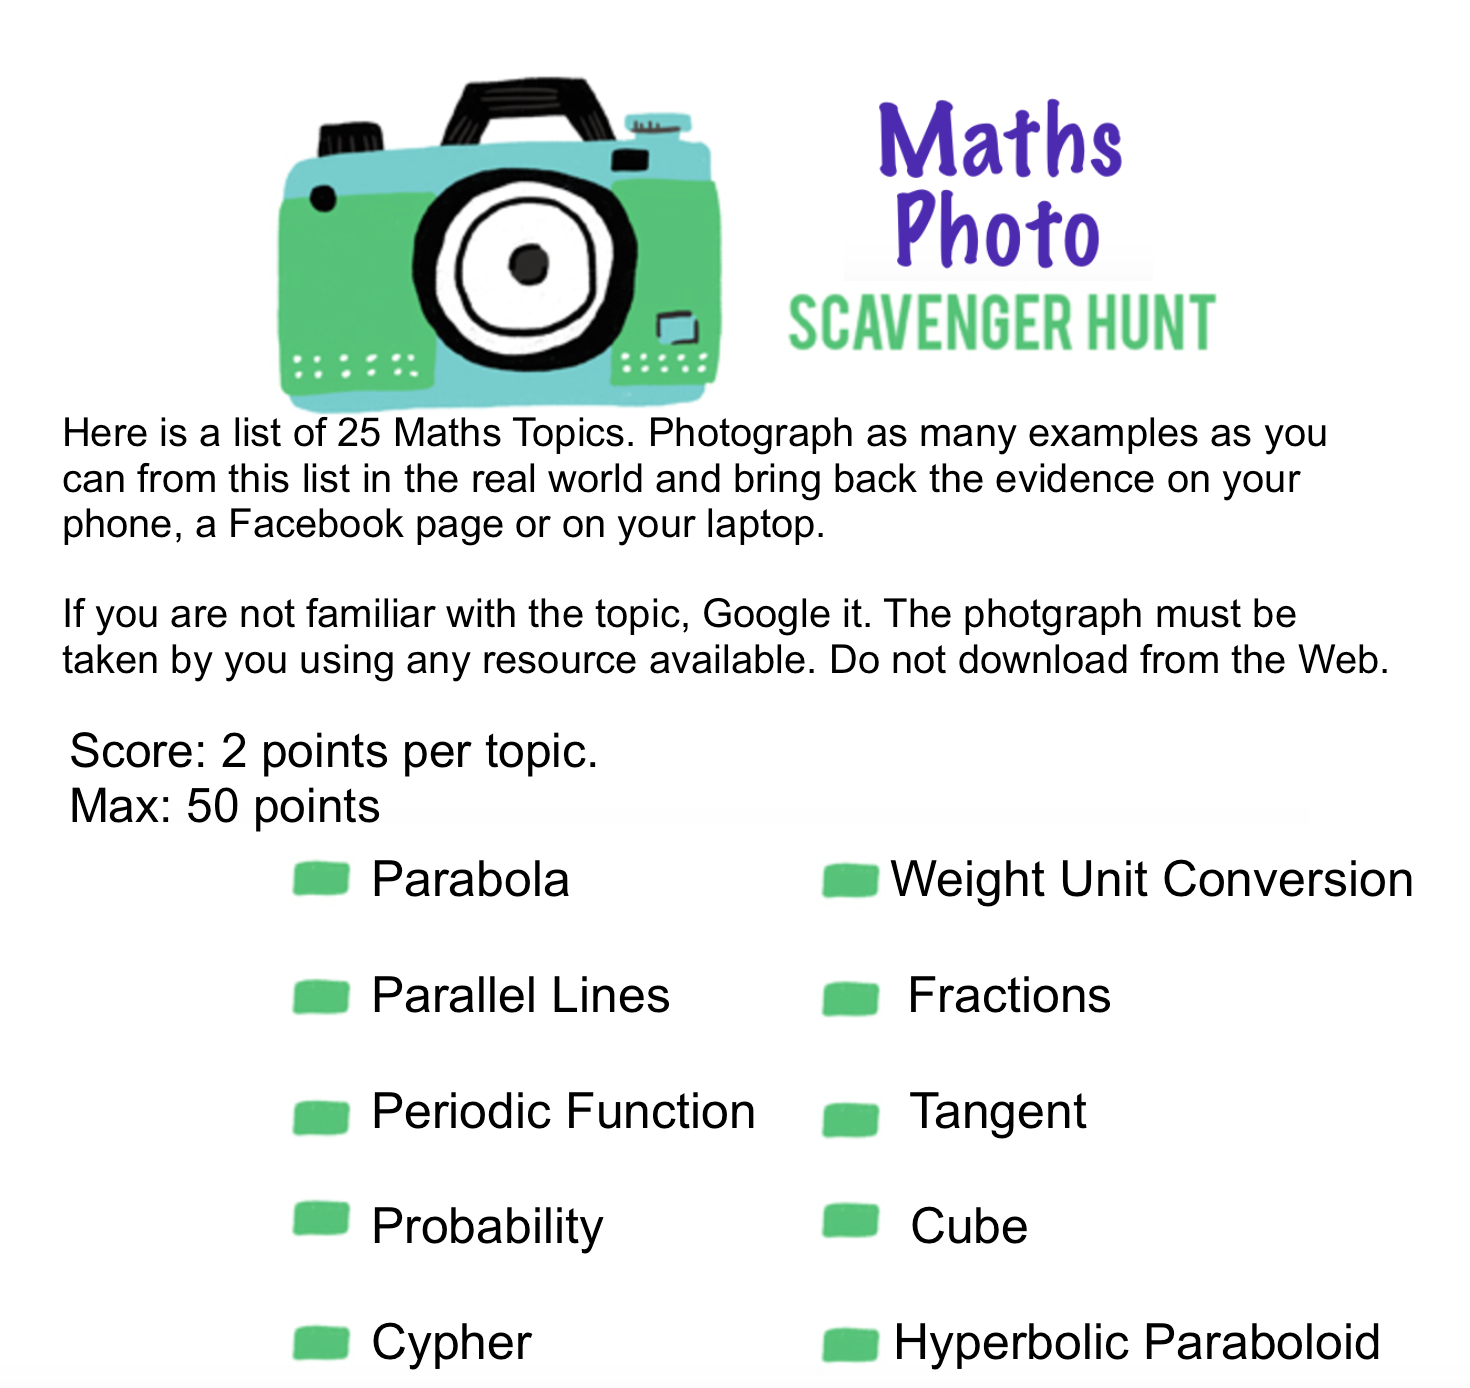 scavenger hunt | Mathspig Blog